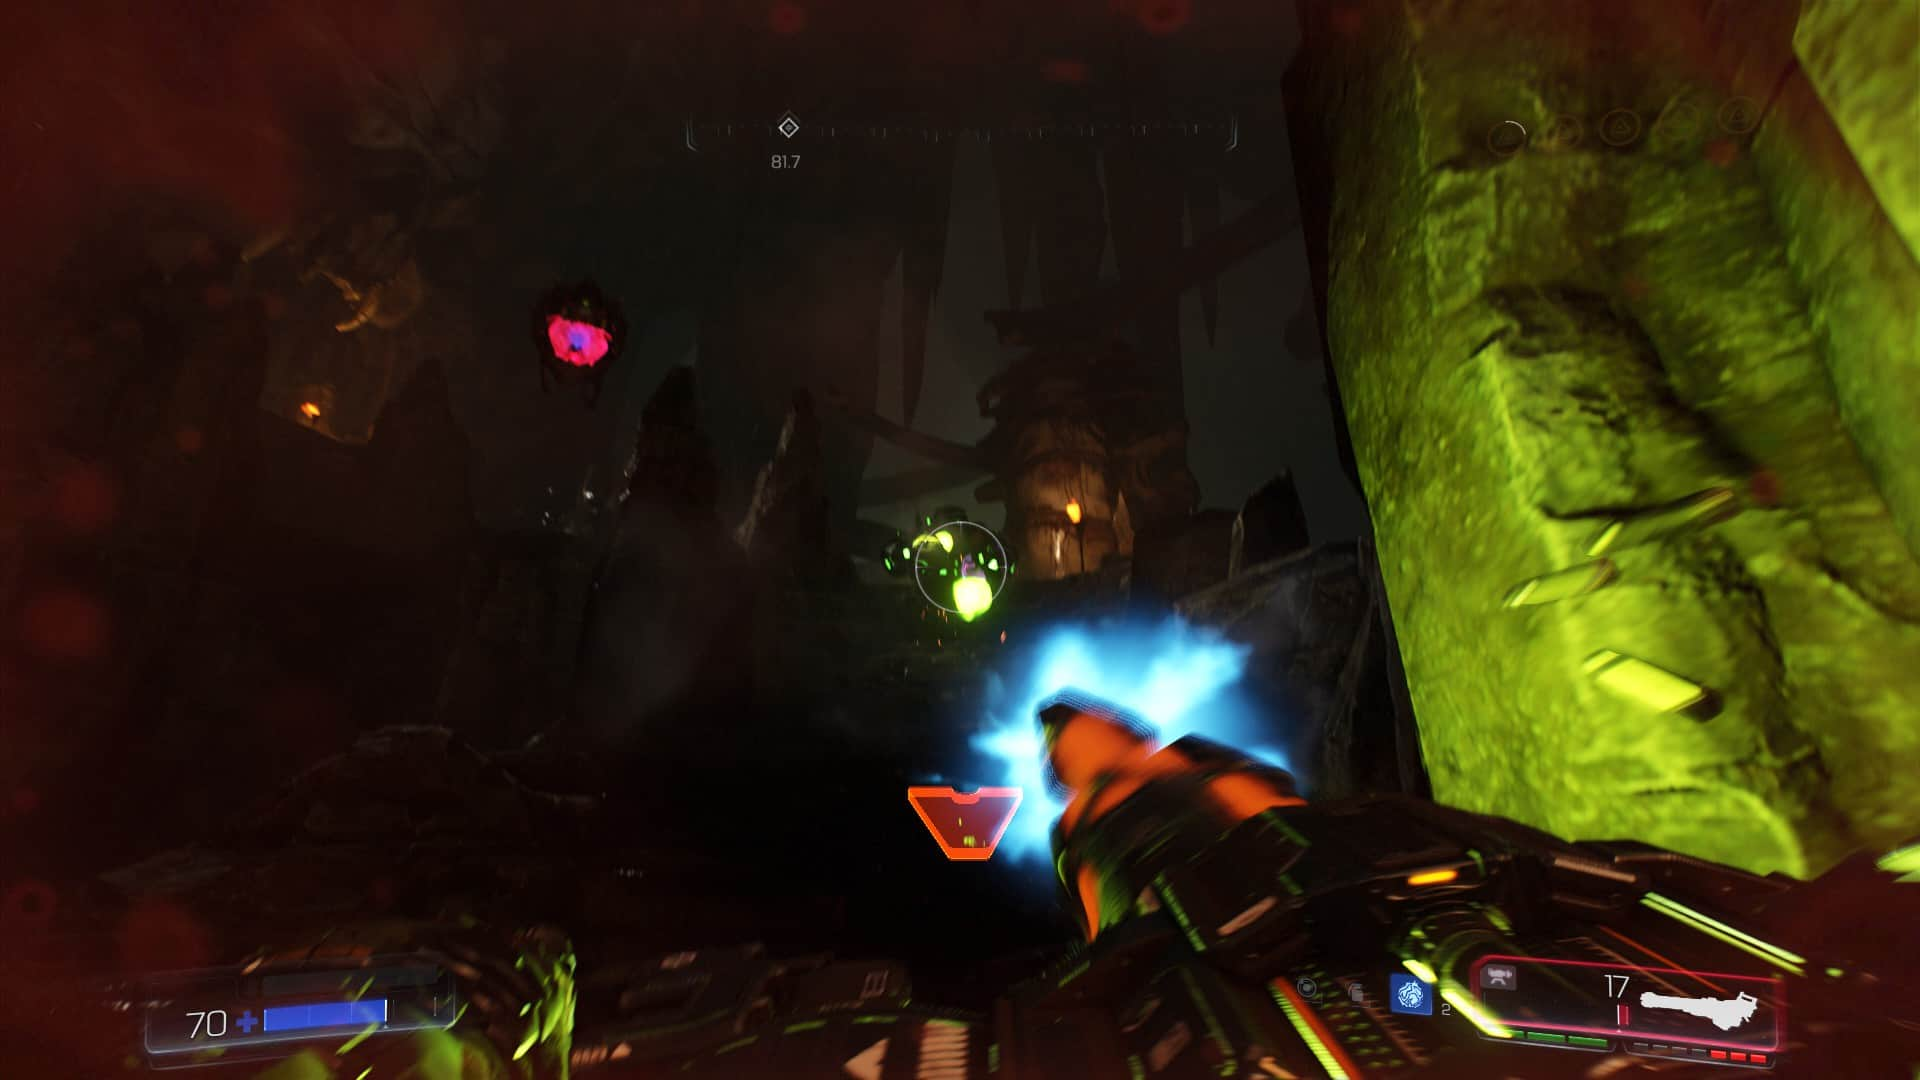 Classic enemies integrate themselves into Doom's focus on pulse-pounding gunplay.